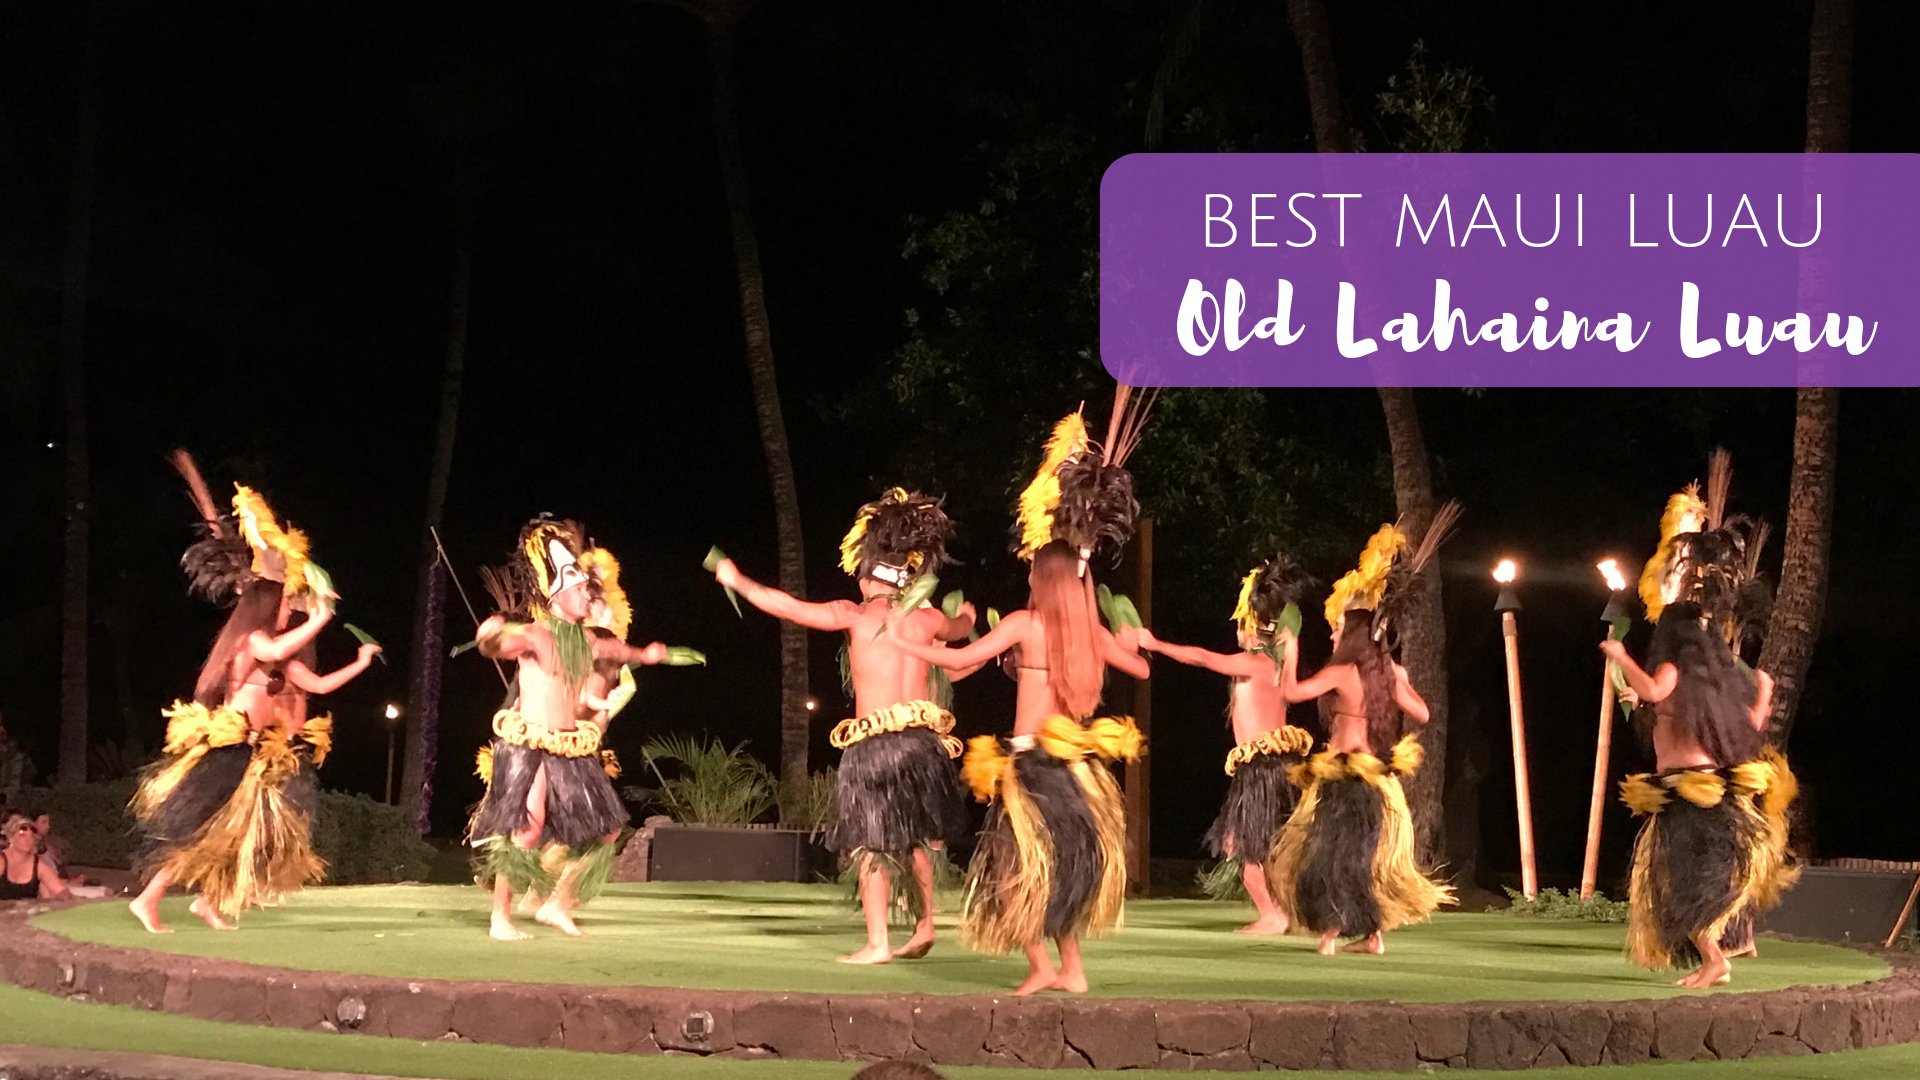 Old Lahaina Luau:: The Best Show in Maui – The Beckham Project